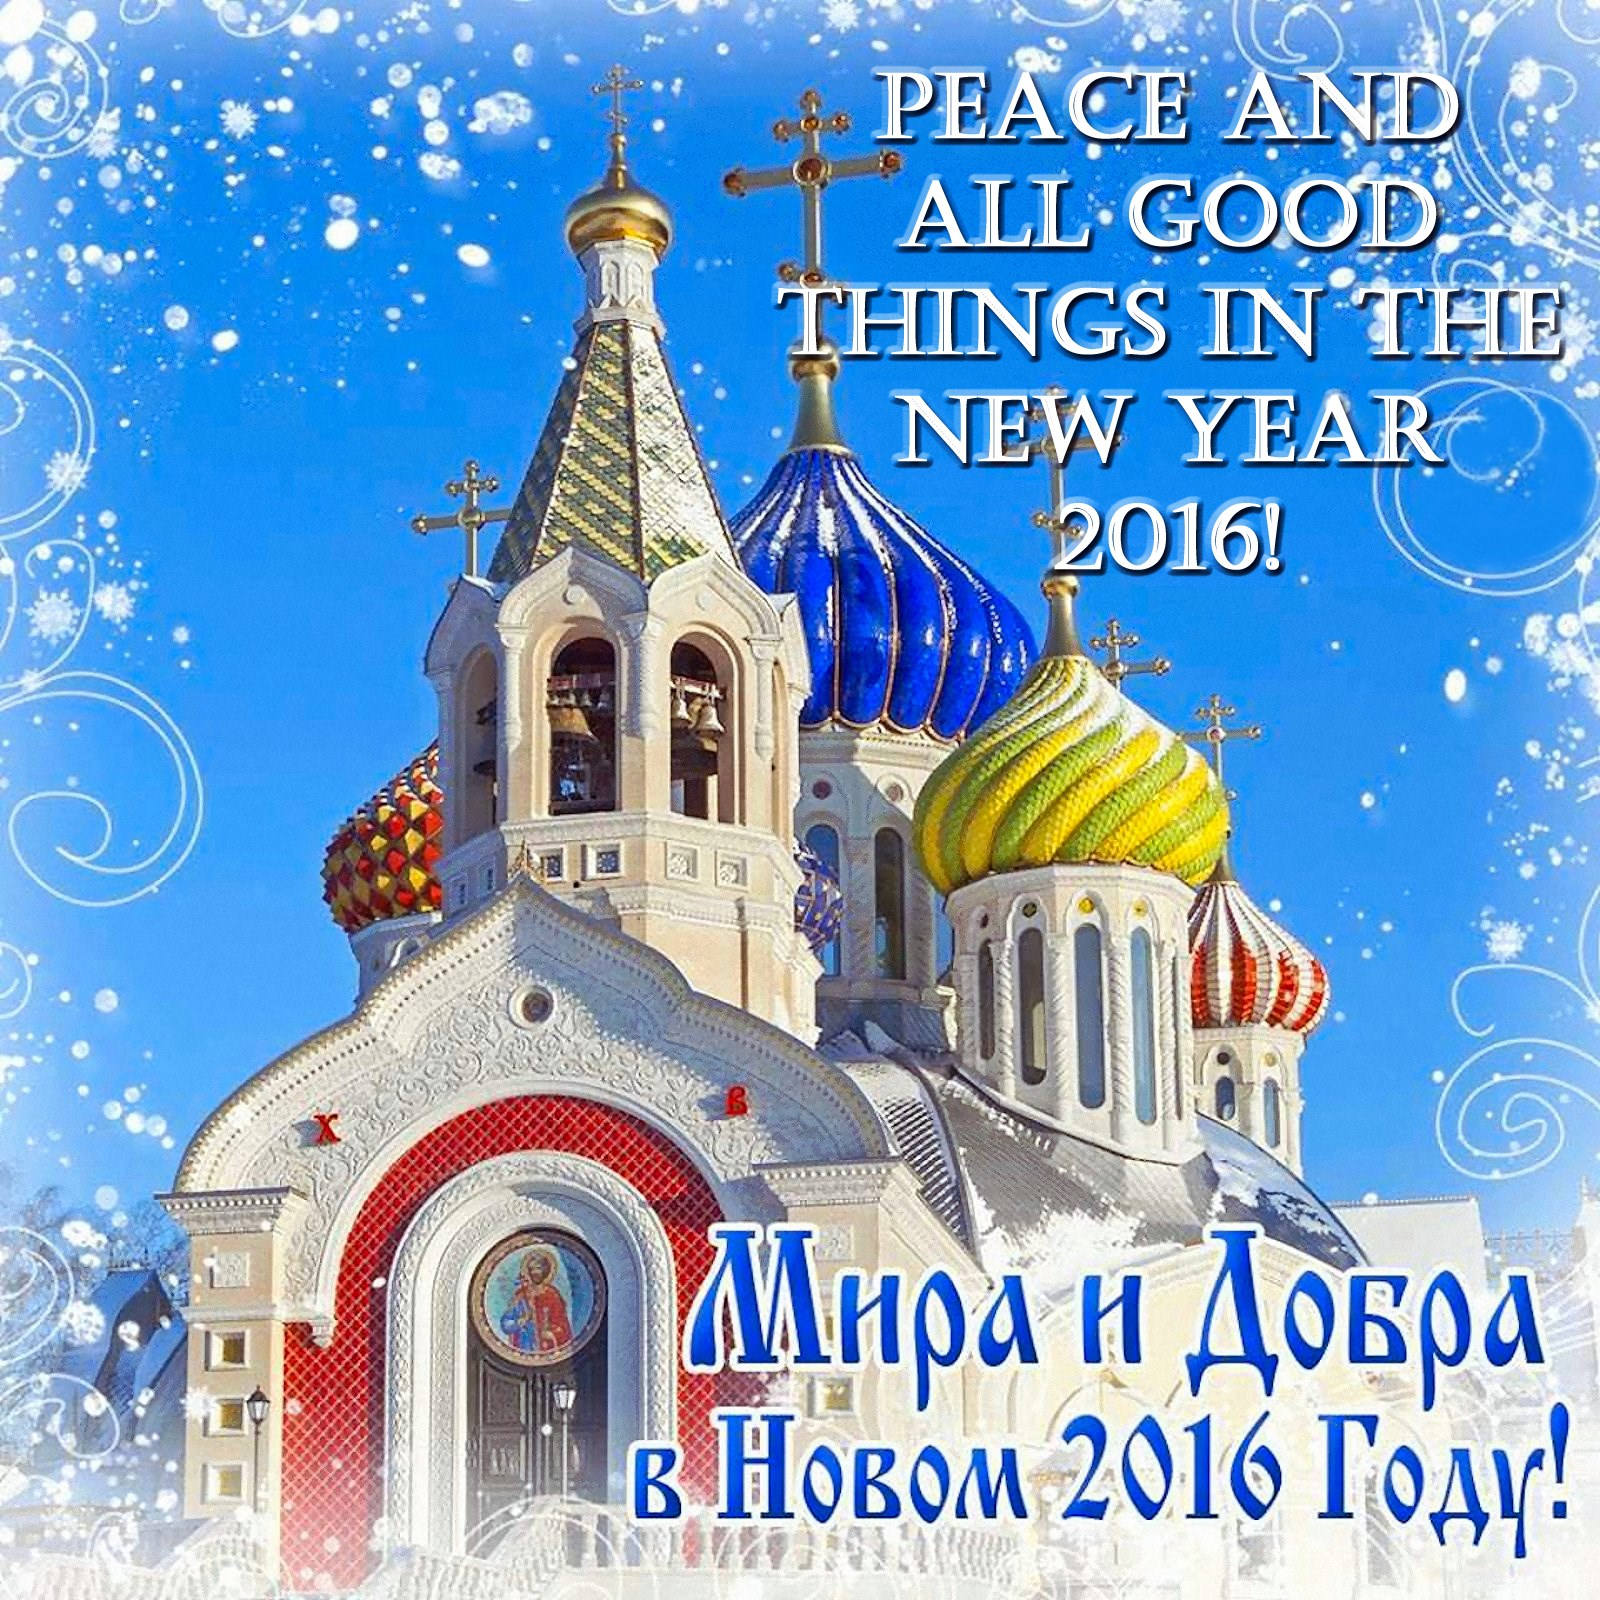 00 russian new year 2016 010116